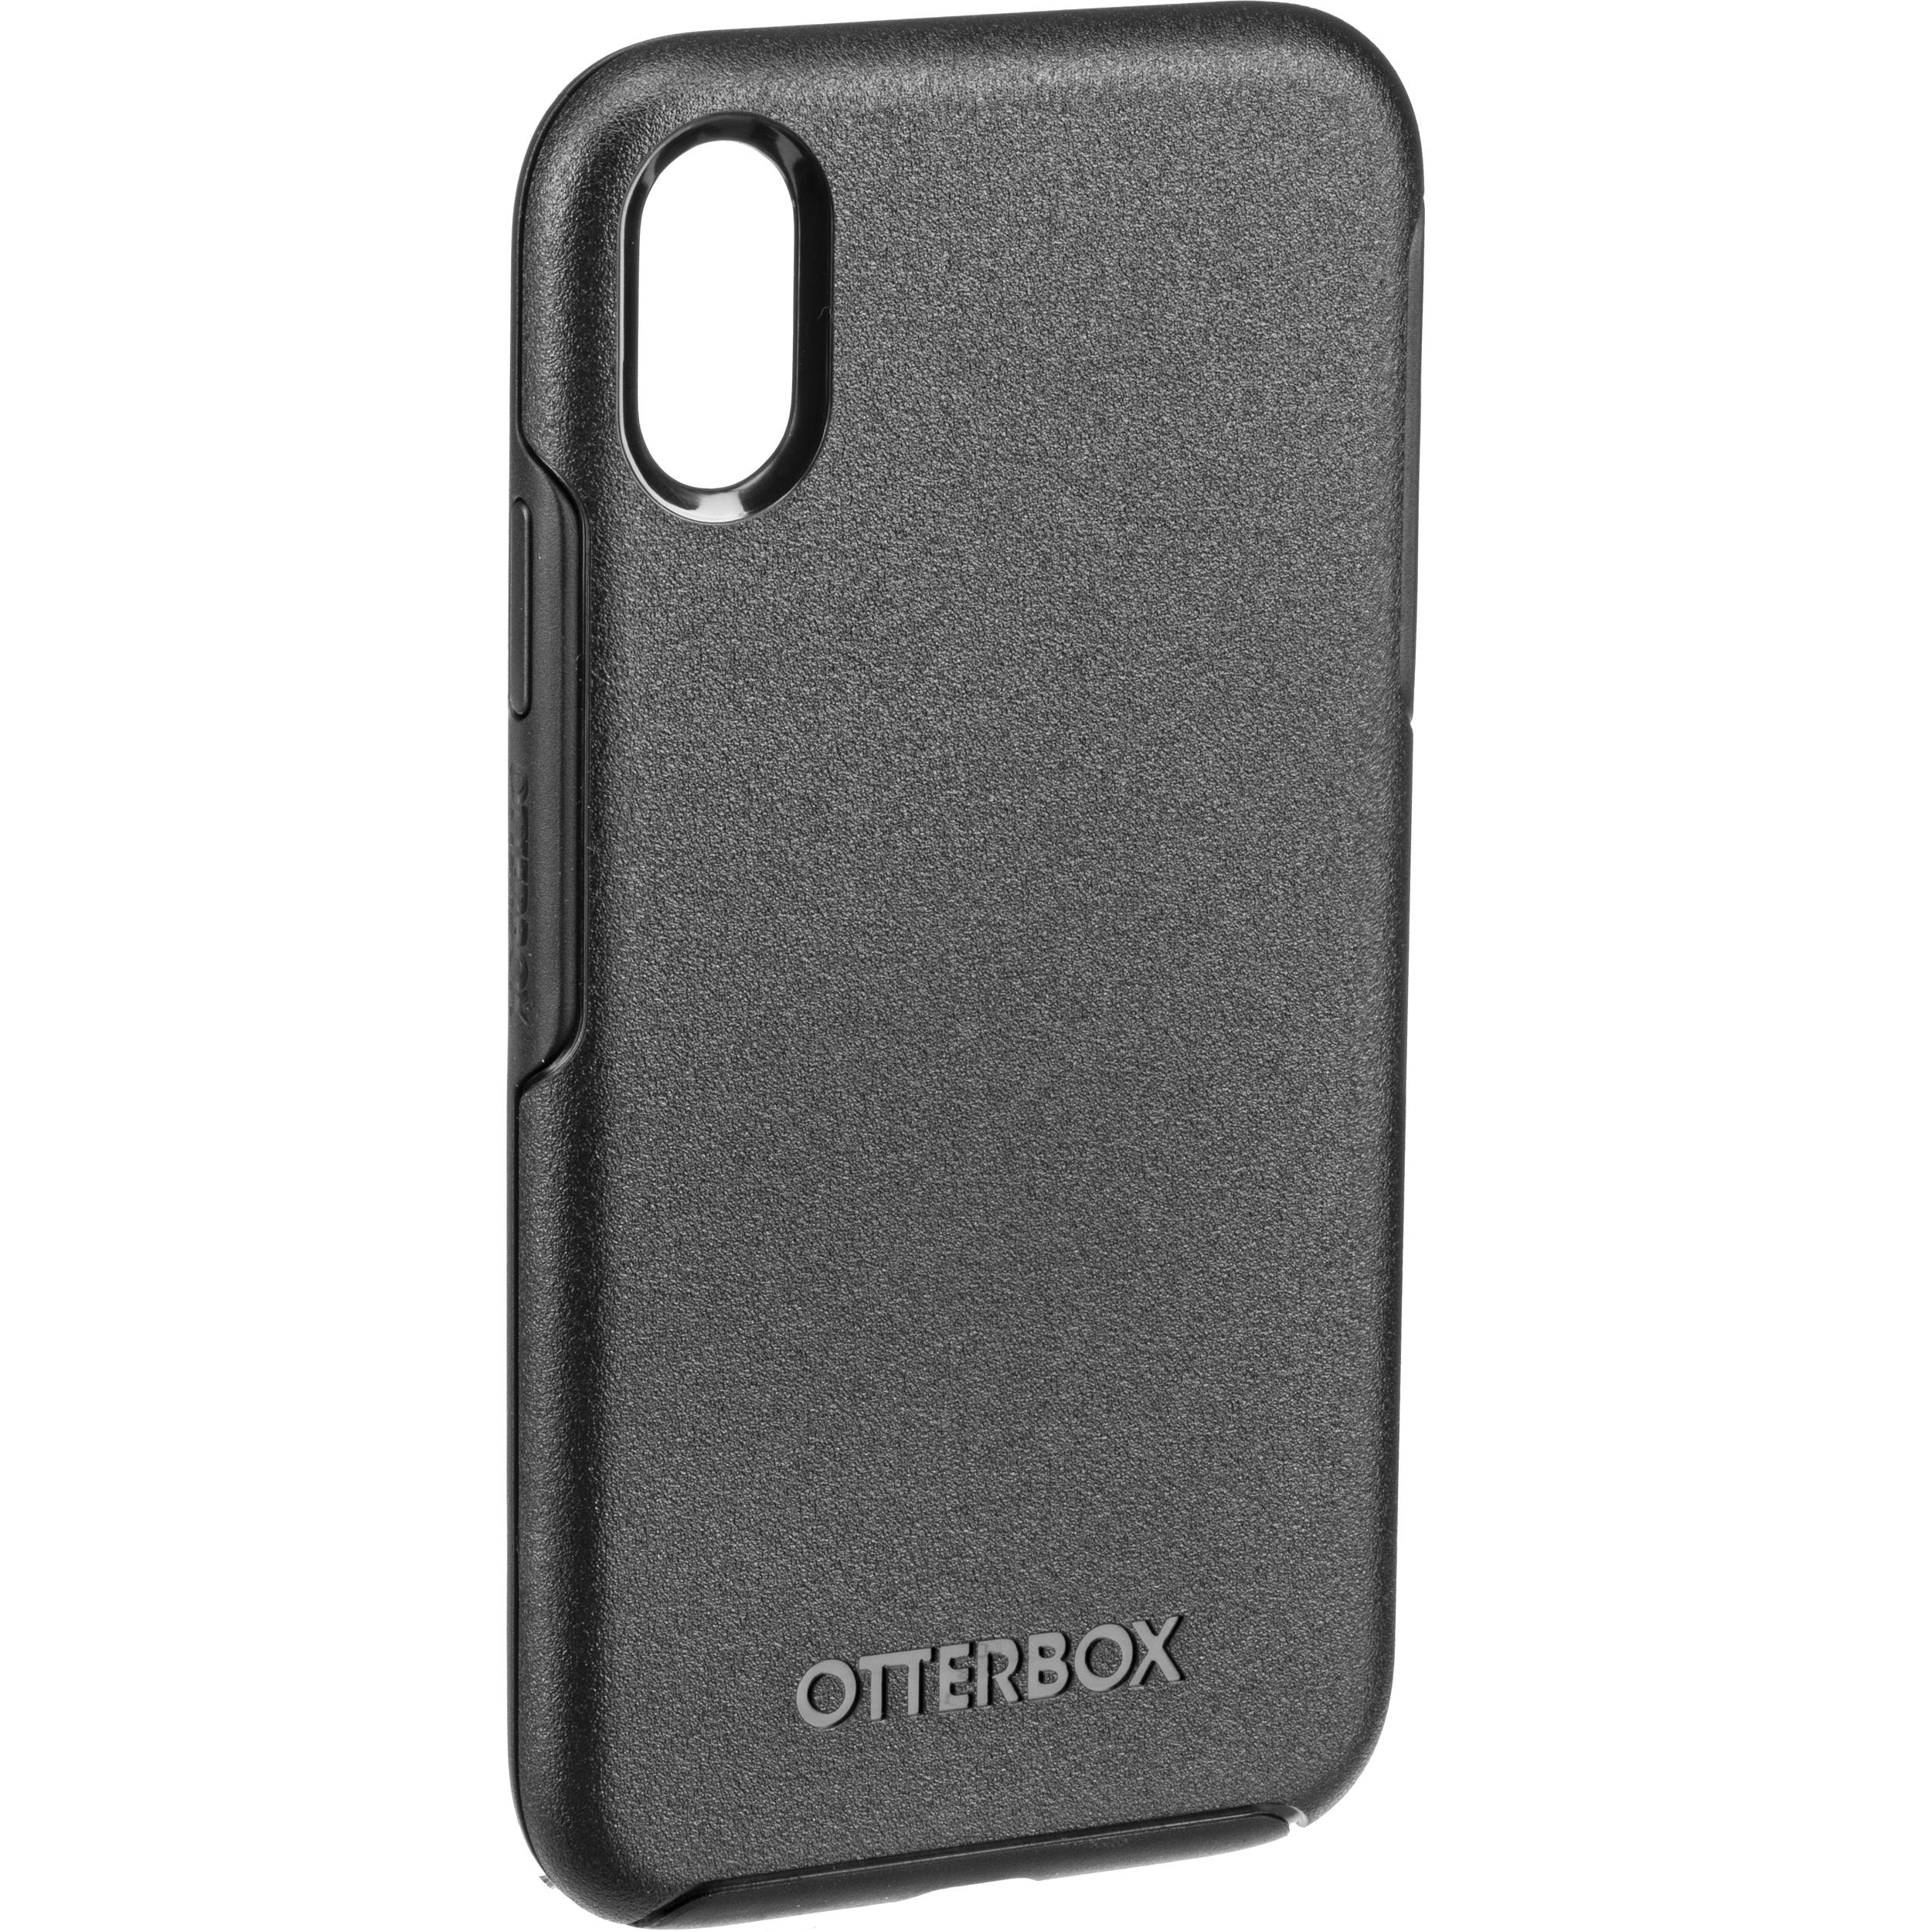 new style 950b3 604be OtterBox Symmetry Series Case for iPhone XR (Black) 77-59818 B&H